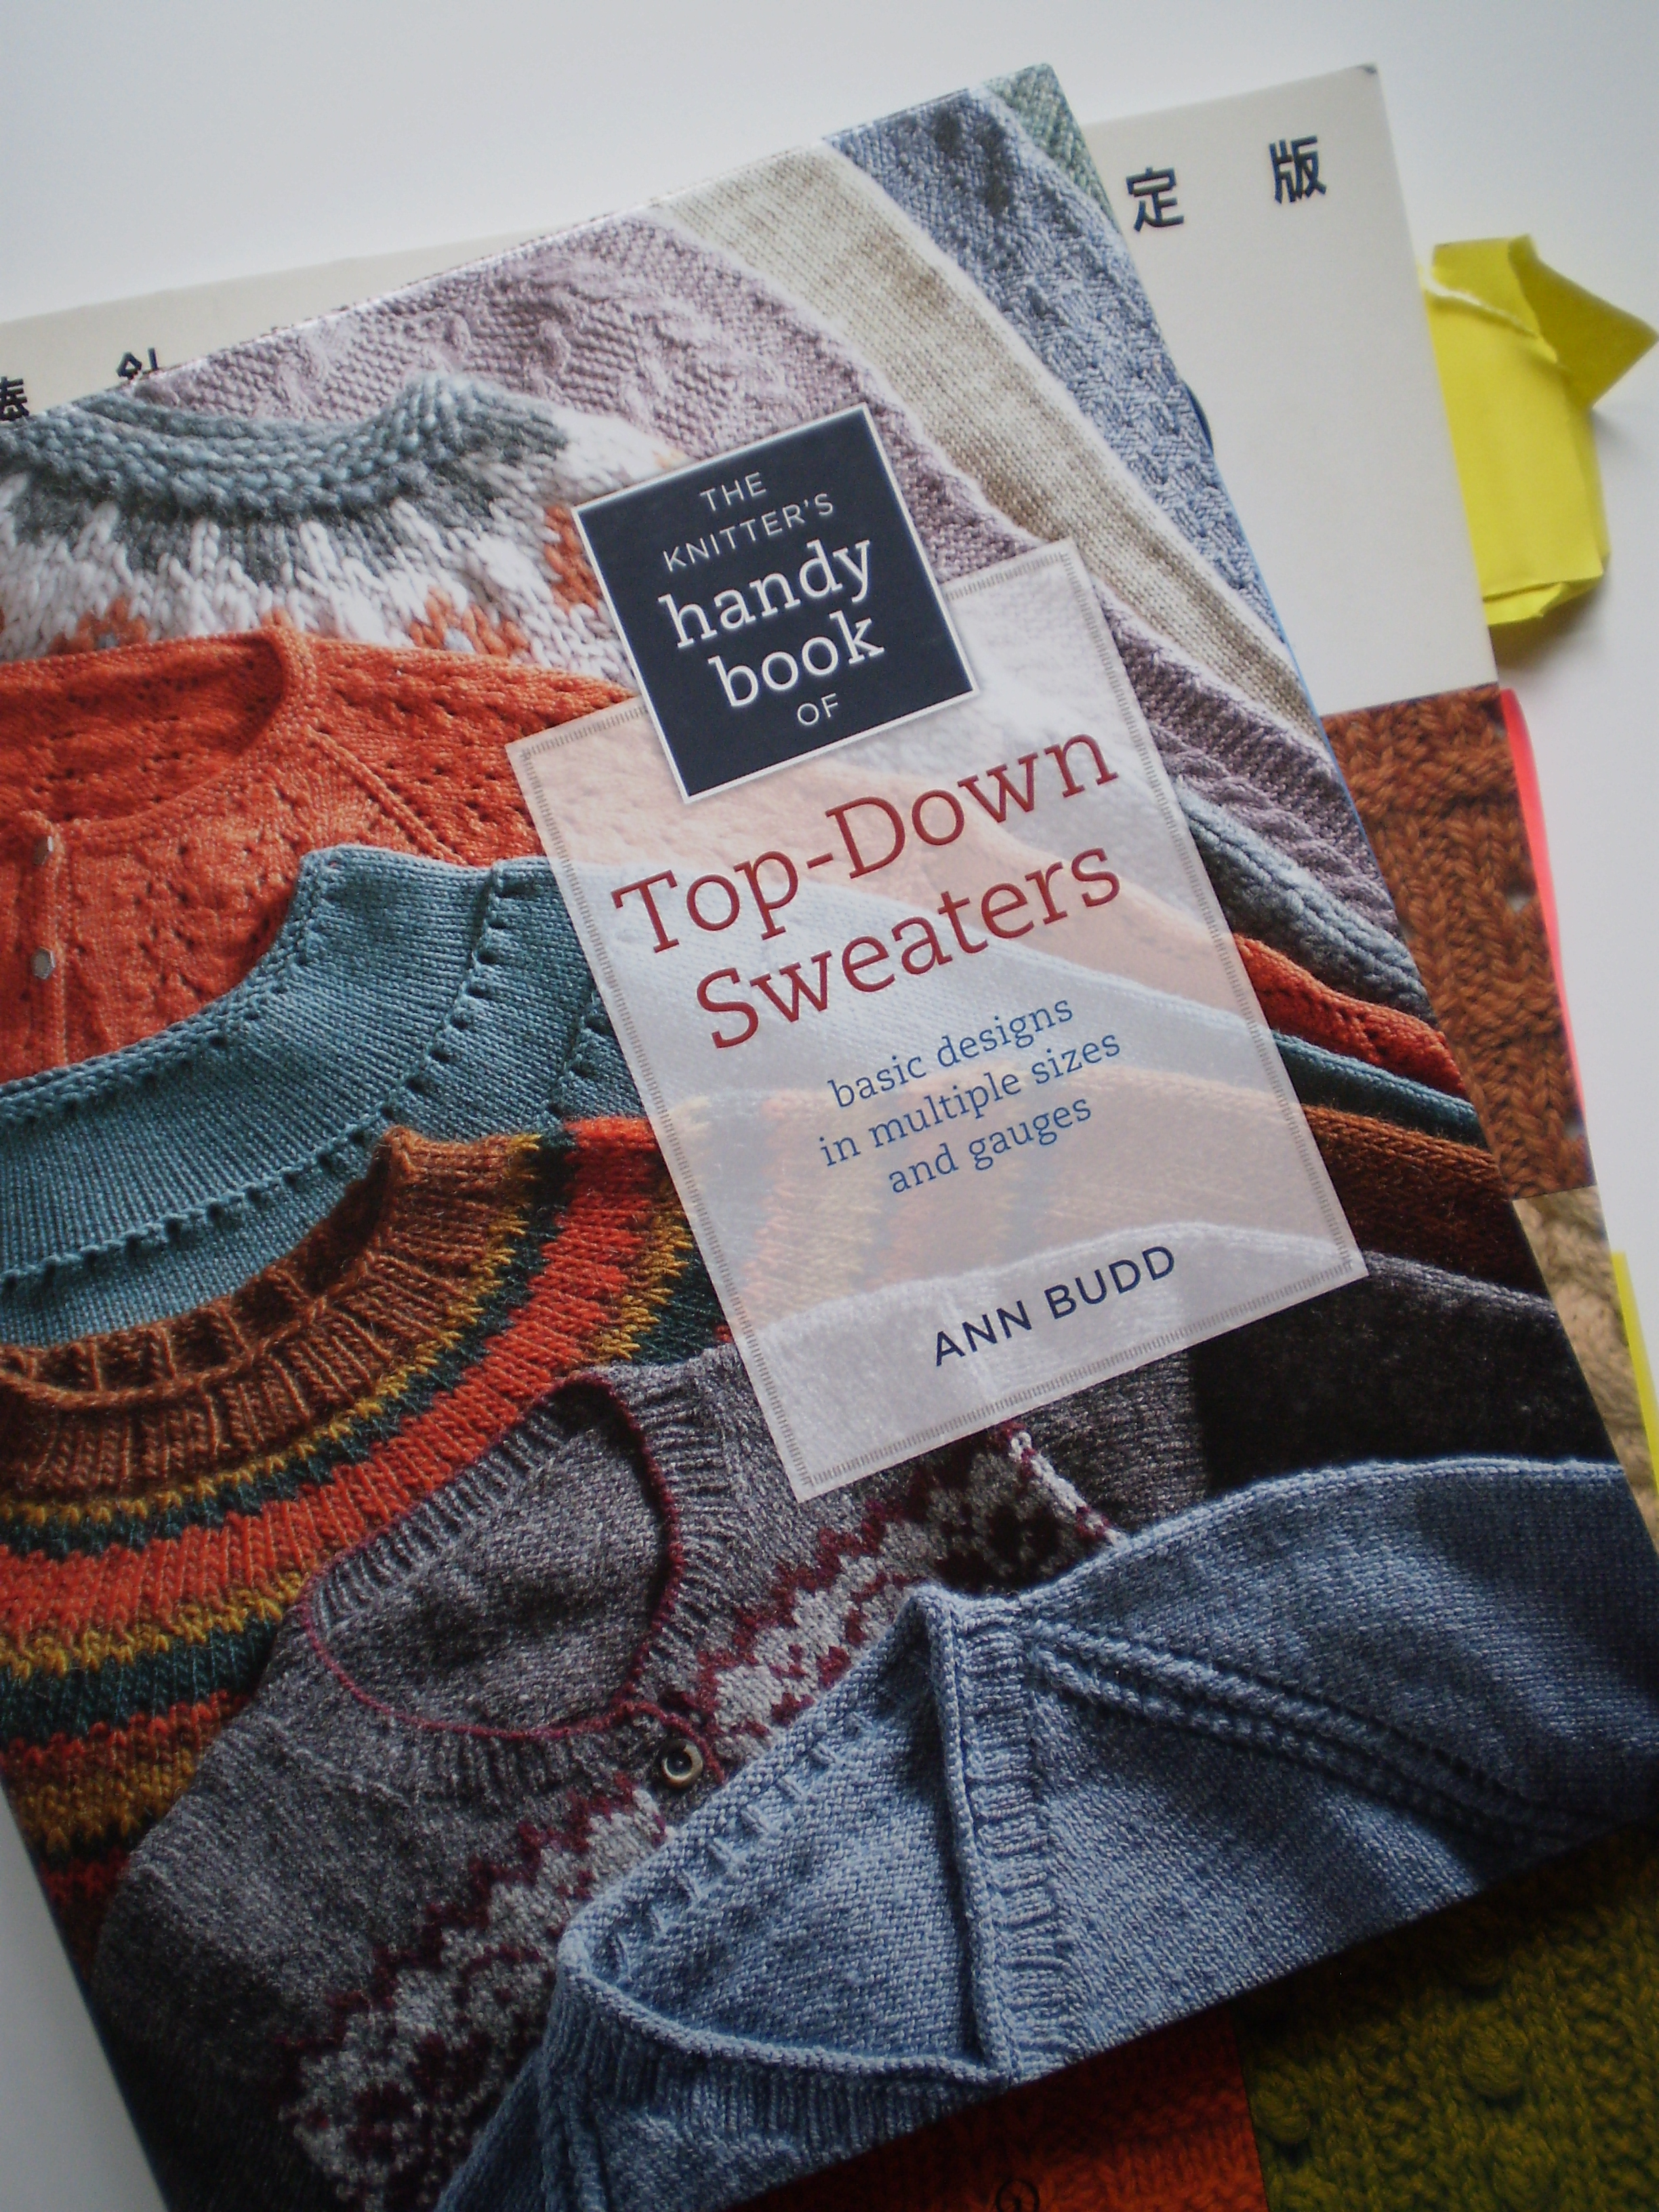 9aebf22f317d knitter s handy book of top-down sweaters